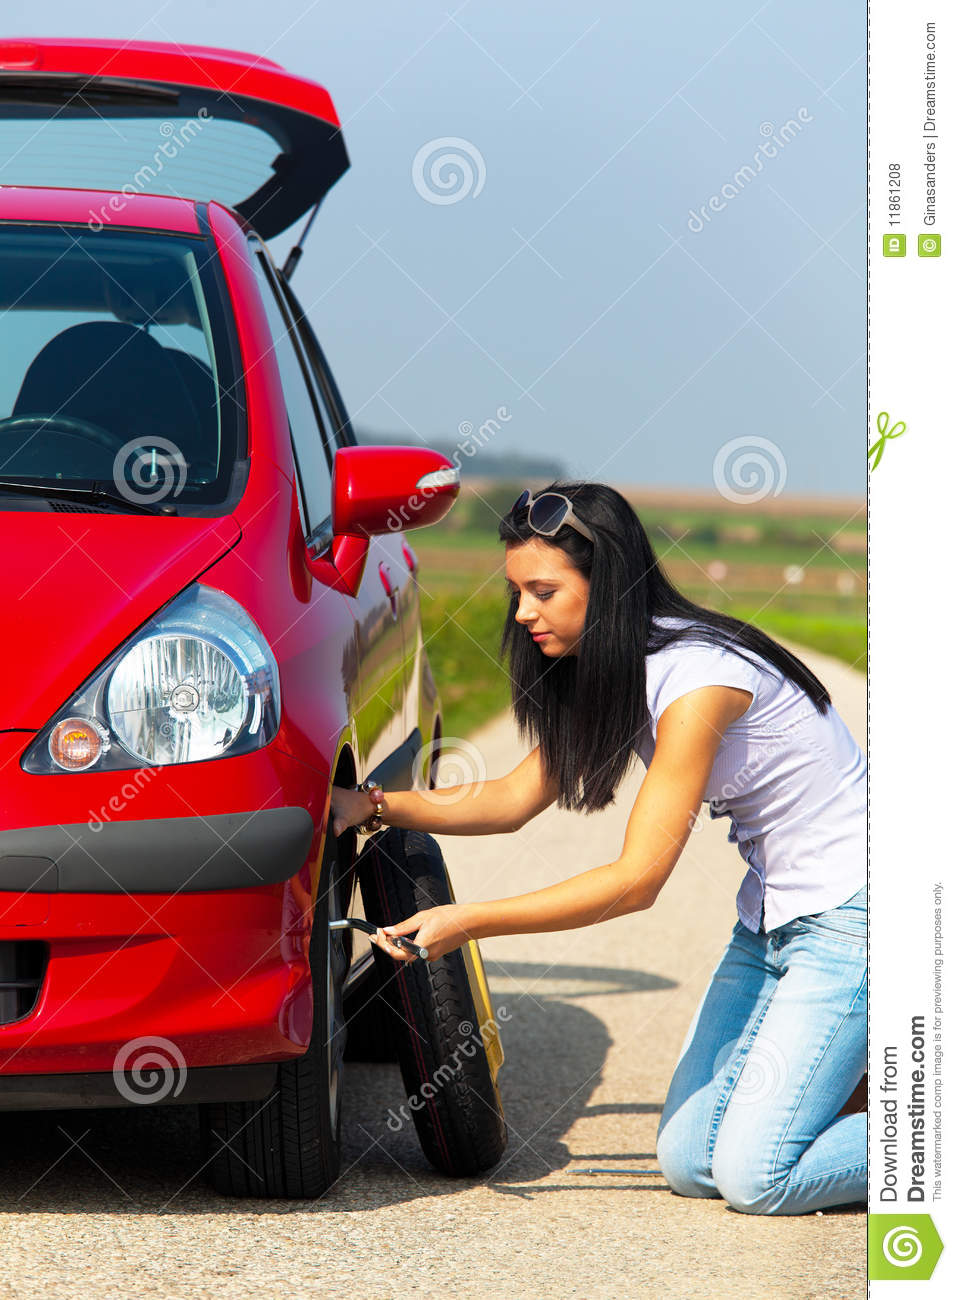 Young Woman Changing Tire Stock Photo Image Of Long